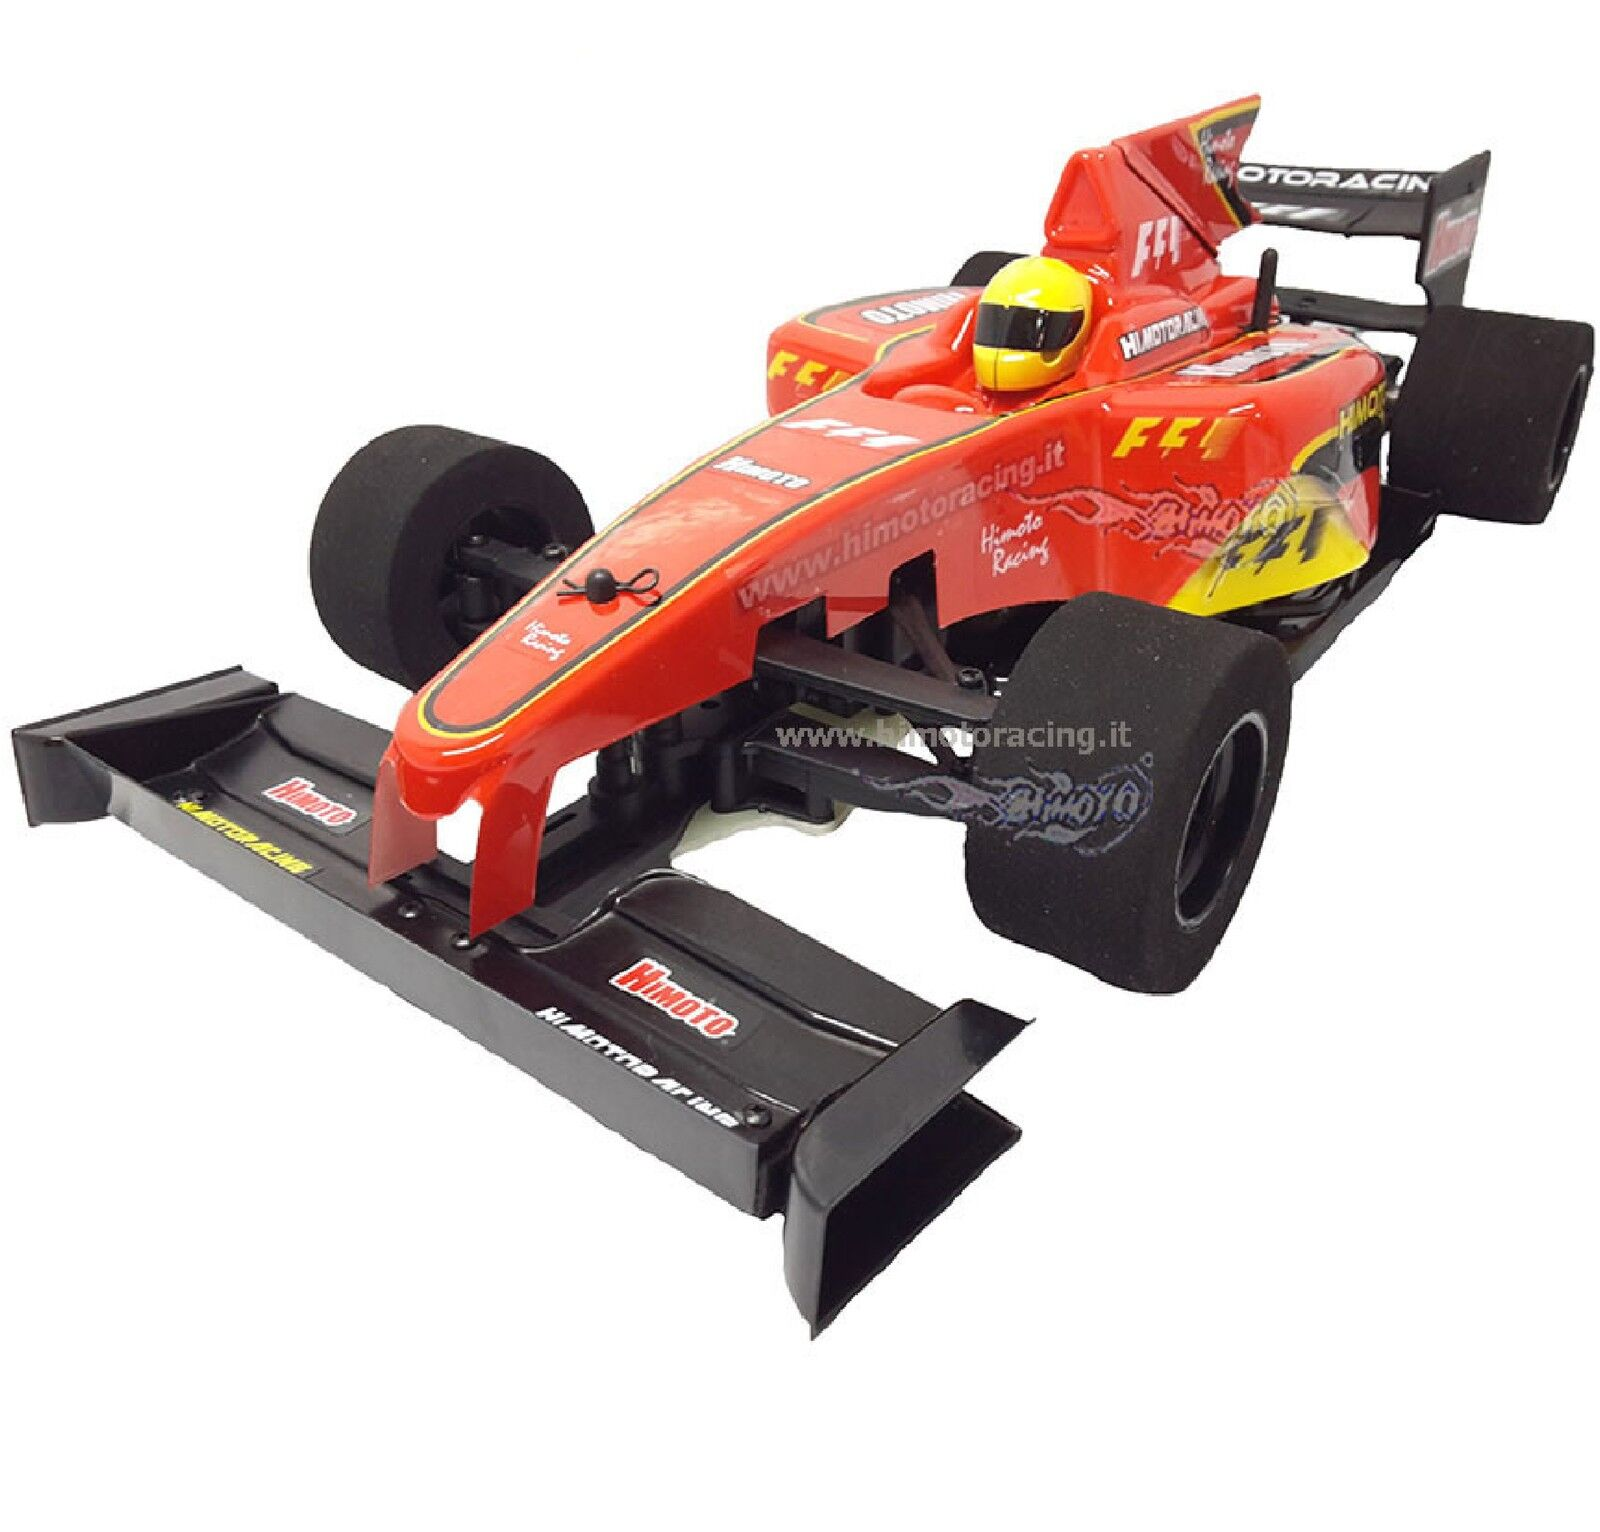 FORMULA CAR ON ROAD 2.4GHZ MOTORE ELETTRICO SPAZZOLE RC540 1 10 2WD RTR HIMOTO